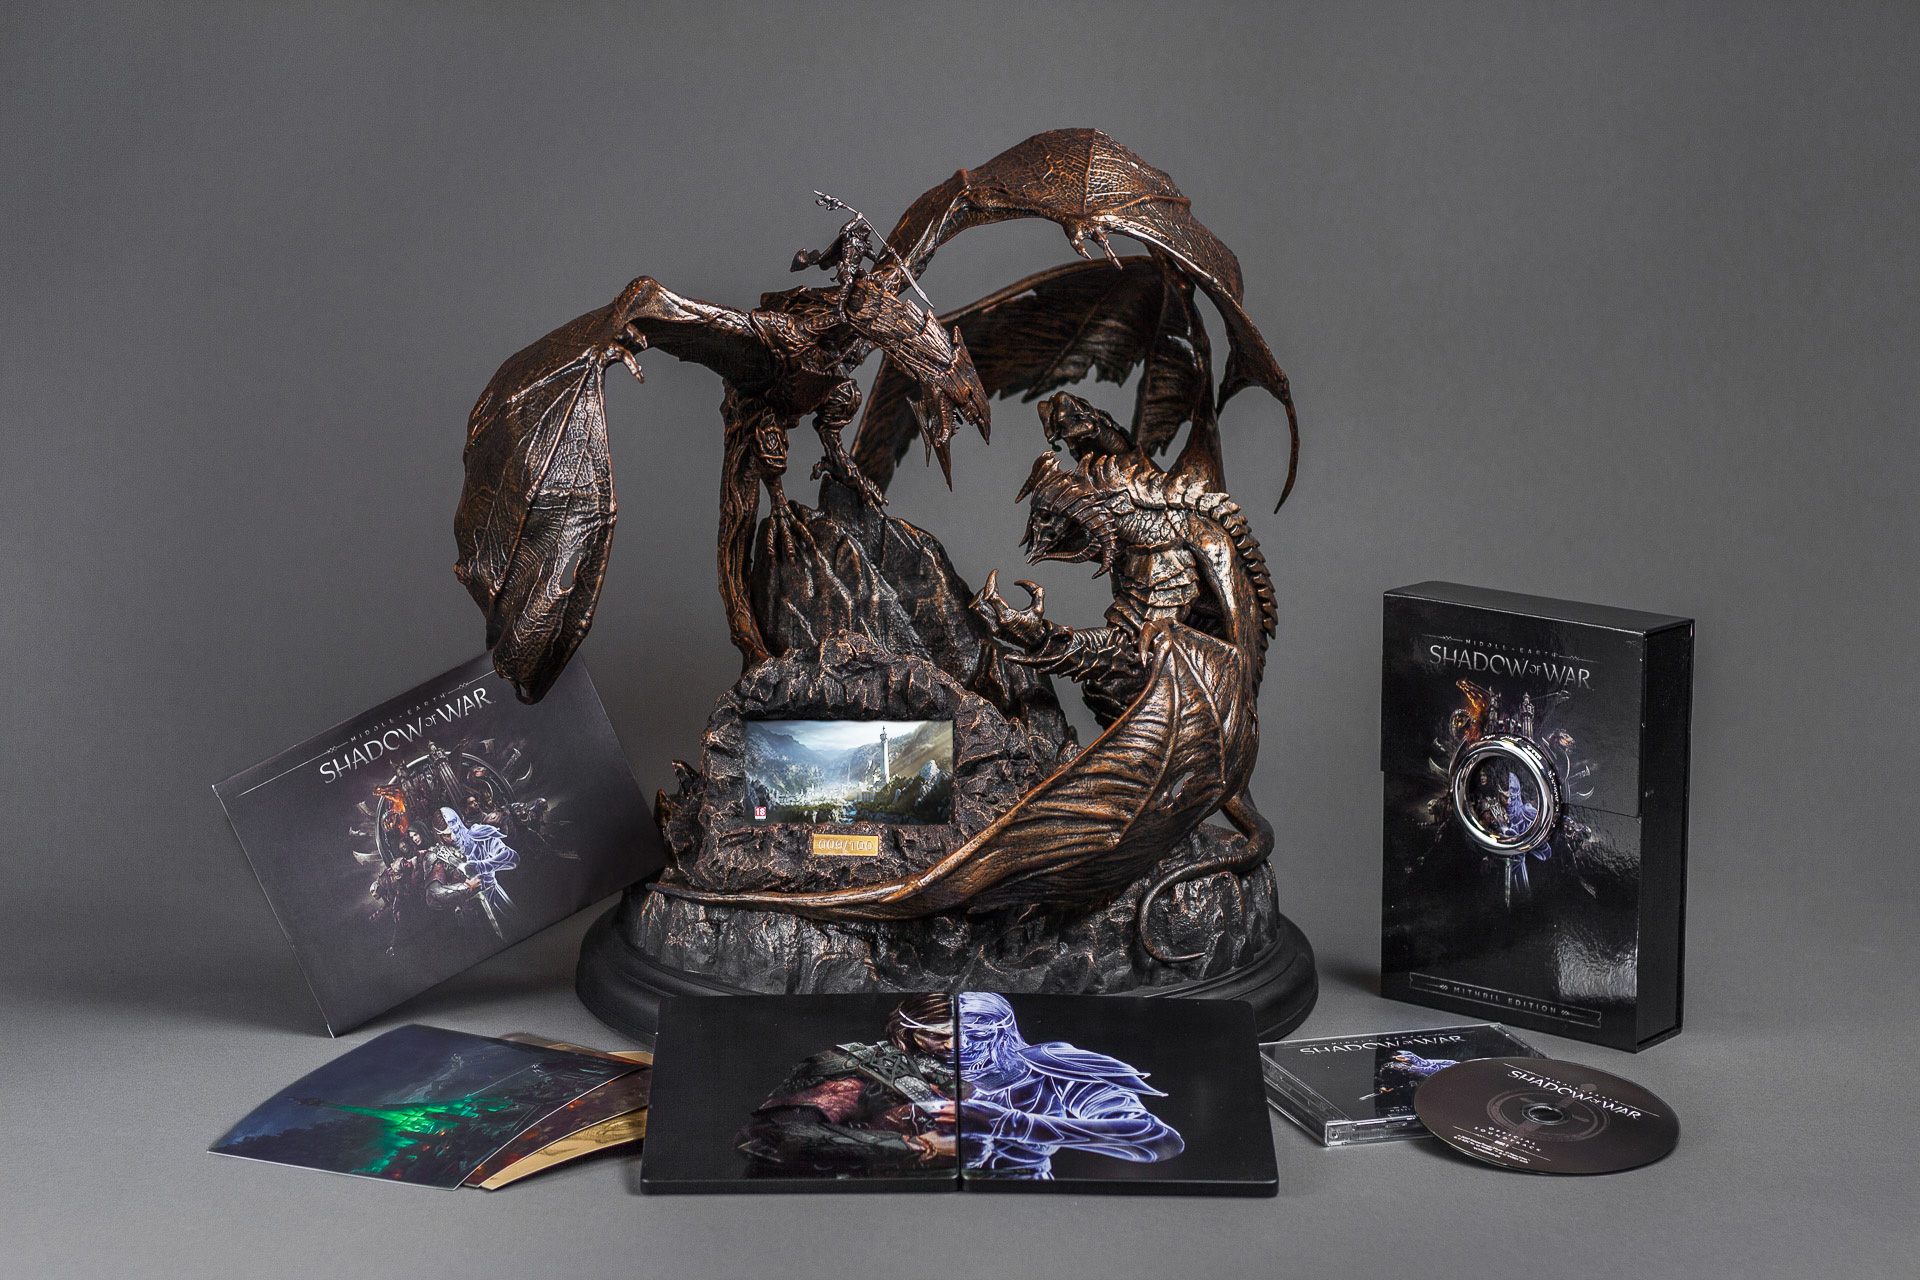 Shadow Of War Limited Edition Takeoff